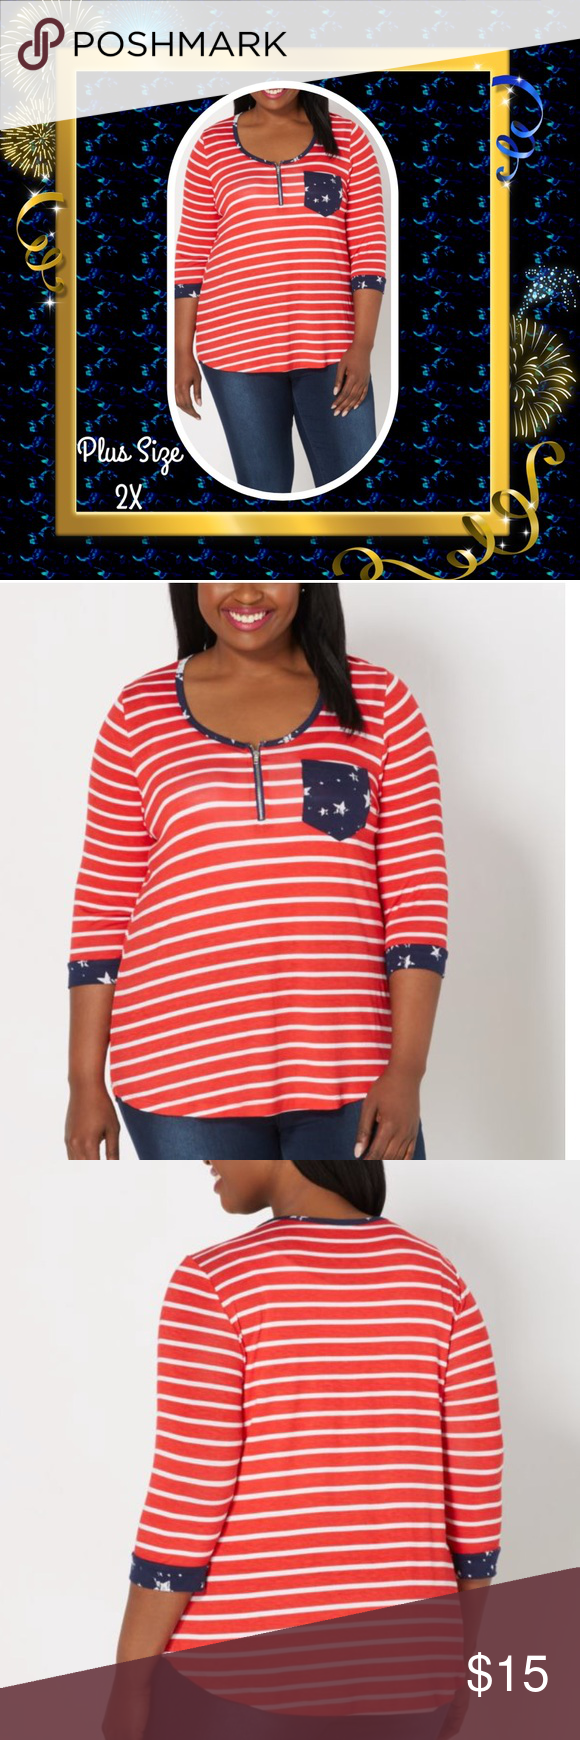 Plus Stars Trim Striped Zip Henley A sweet plus size top for relaxing weekday dress. Pair it with your favorite pair of jeans. Made of a super soft jersey in a red stripes print, it features navy star contrast print trim with a quarter zip at the neckline. Chest pocket. 95% Rayon, 5% Spandex. Machine wash instructions on the tag. Tops